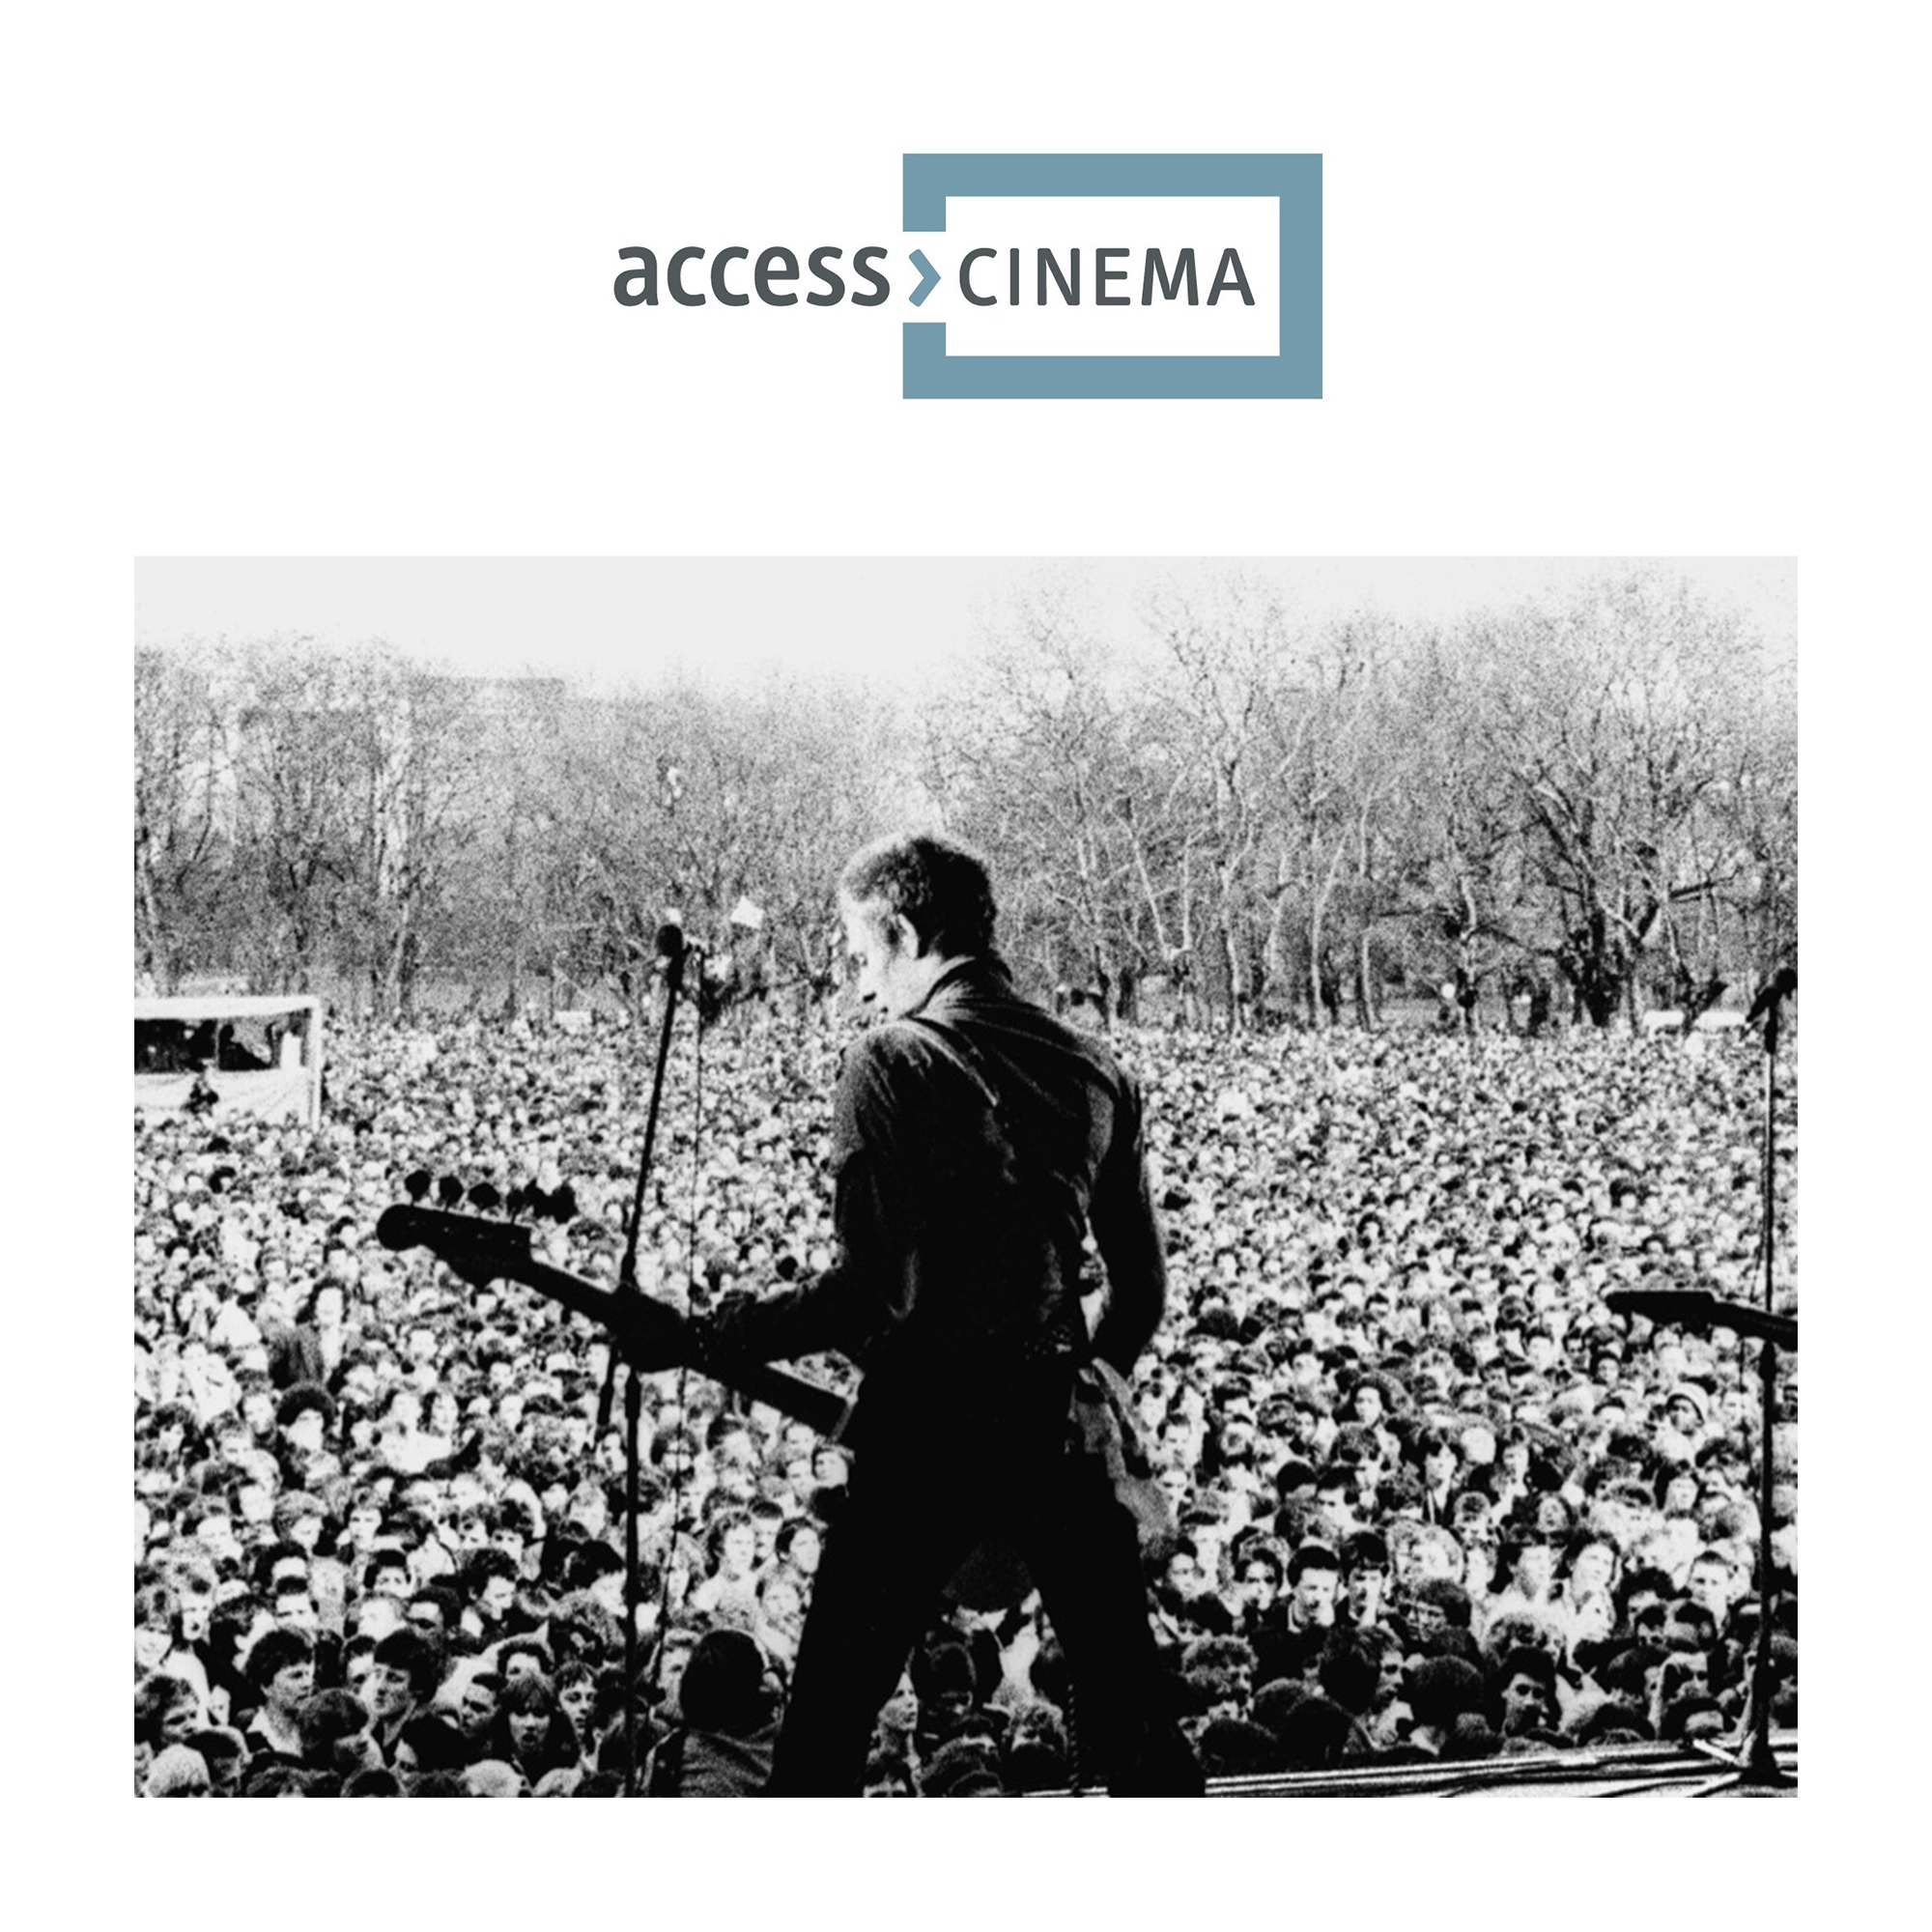 WHITE RIOT at access>CINEMA